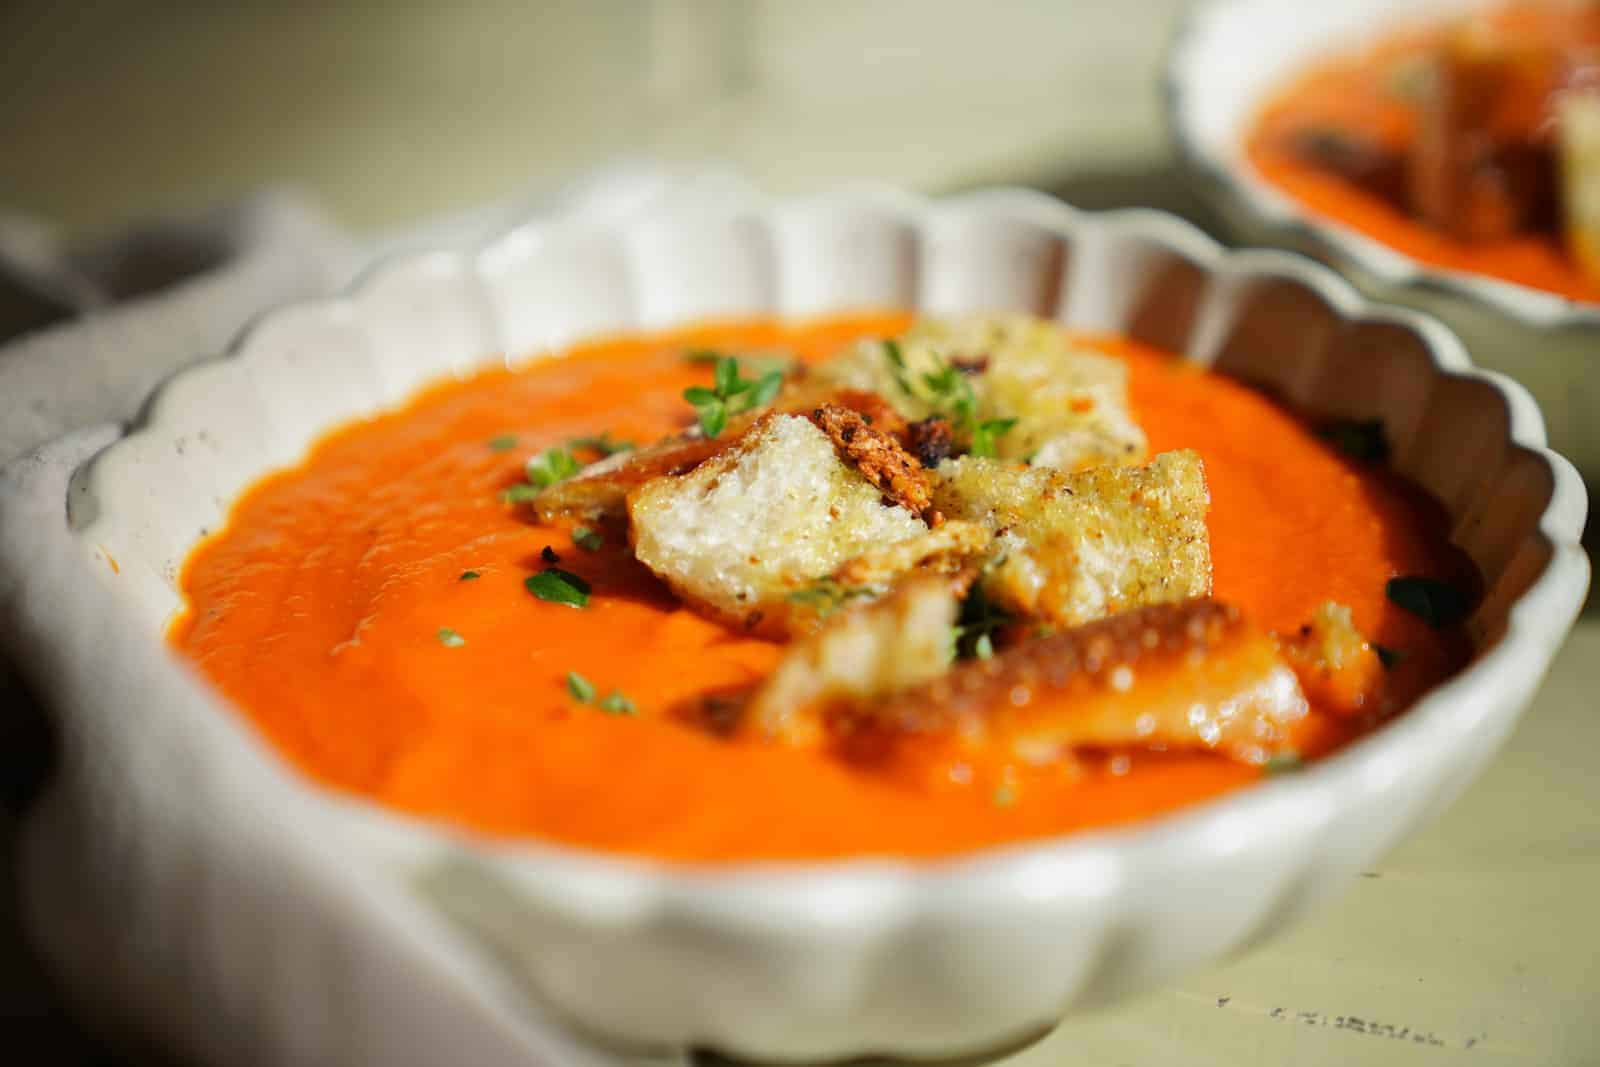 One of my go-to soup recipes, creamy tomato soup close-up in a bowl